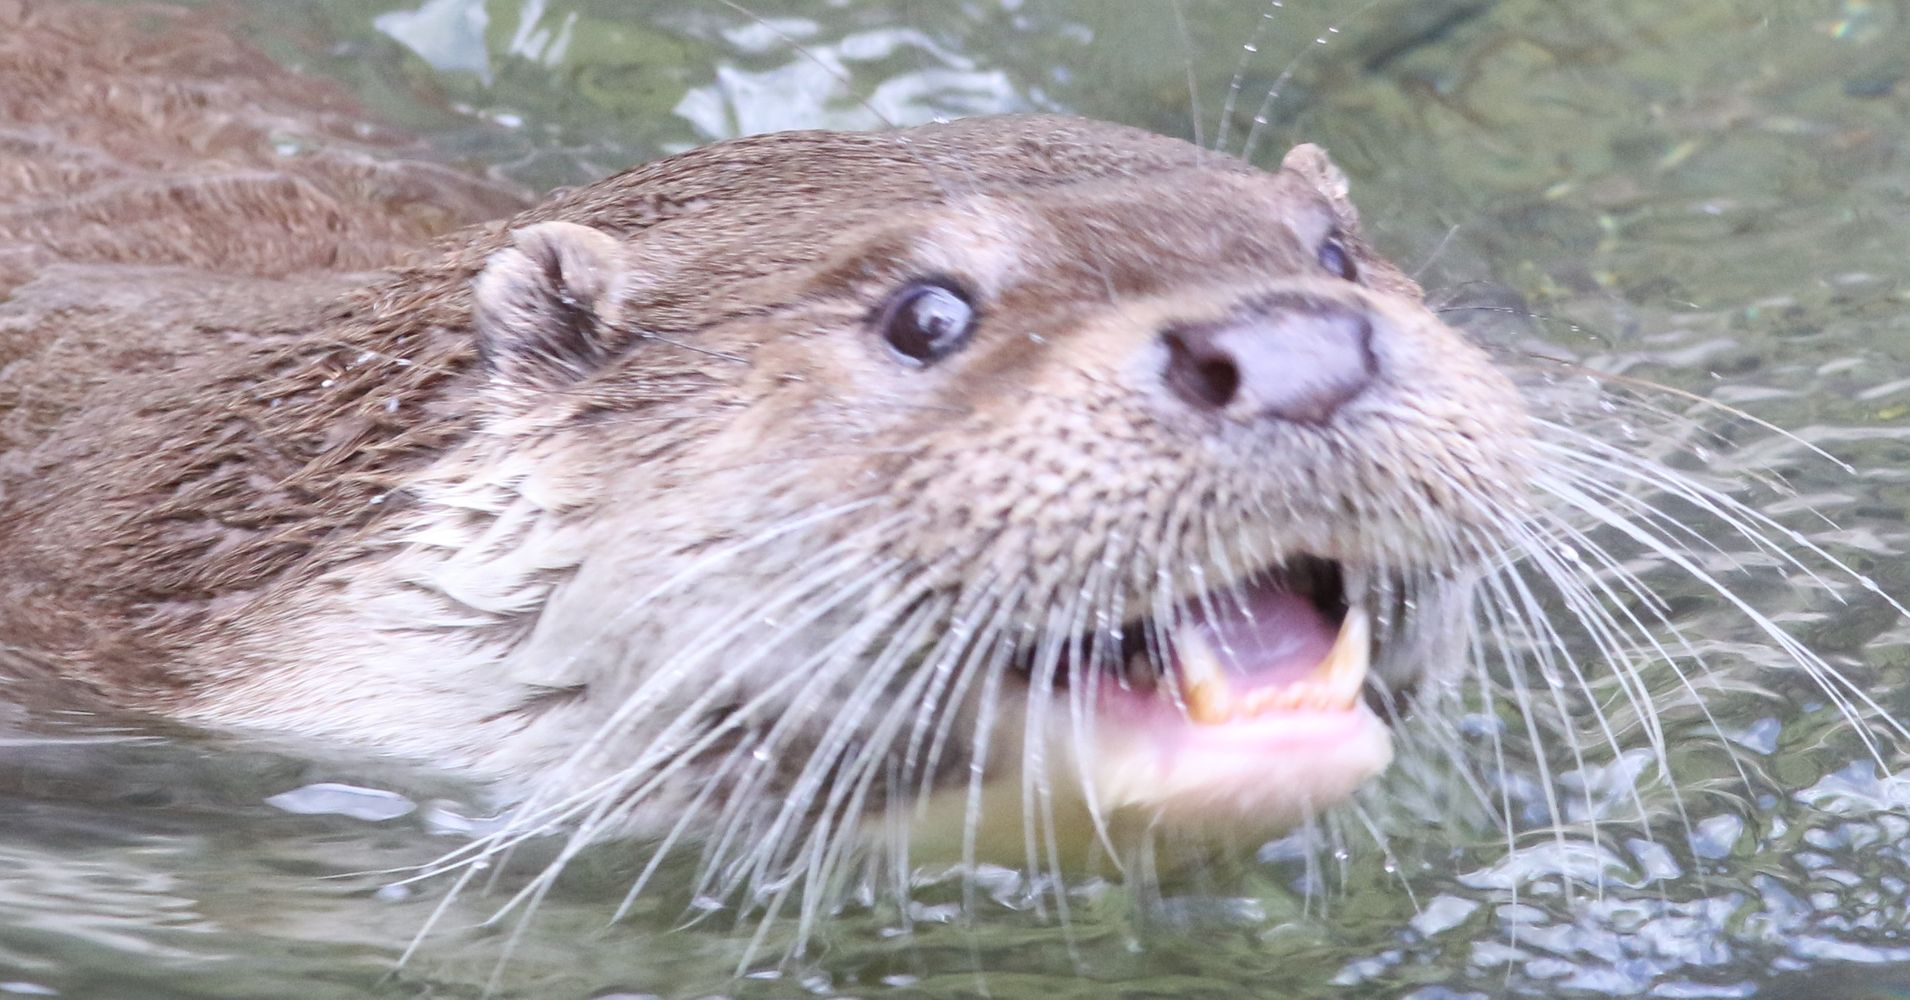 otter wanted for devouring koi at formal garden may have made a